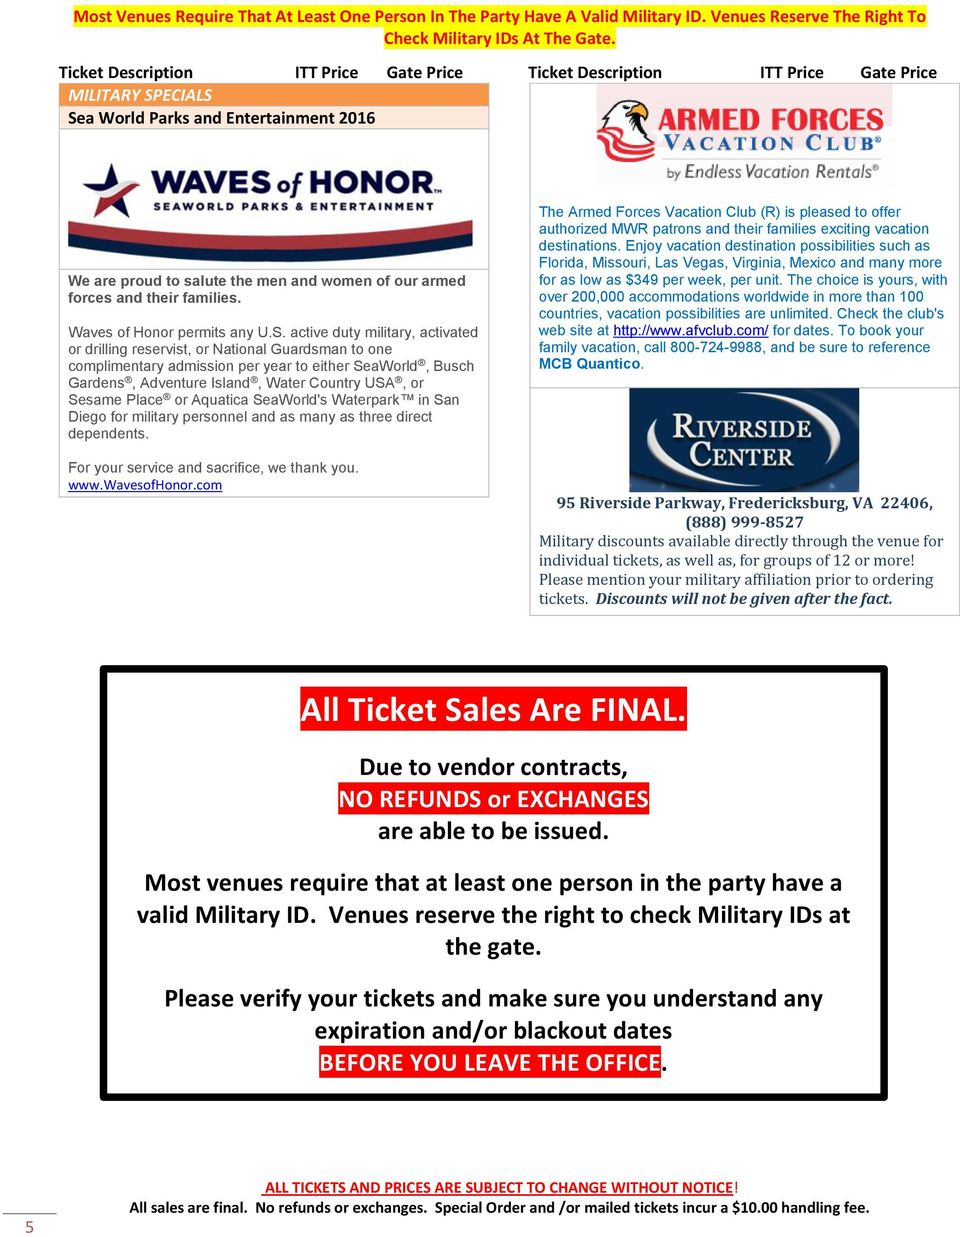 Sea World Parks and Entertainment 2016 We are proud to salute the men and women of our armed forces and their families. Waves of Honor permits any U.S. active duty military, activated or drilling